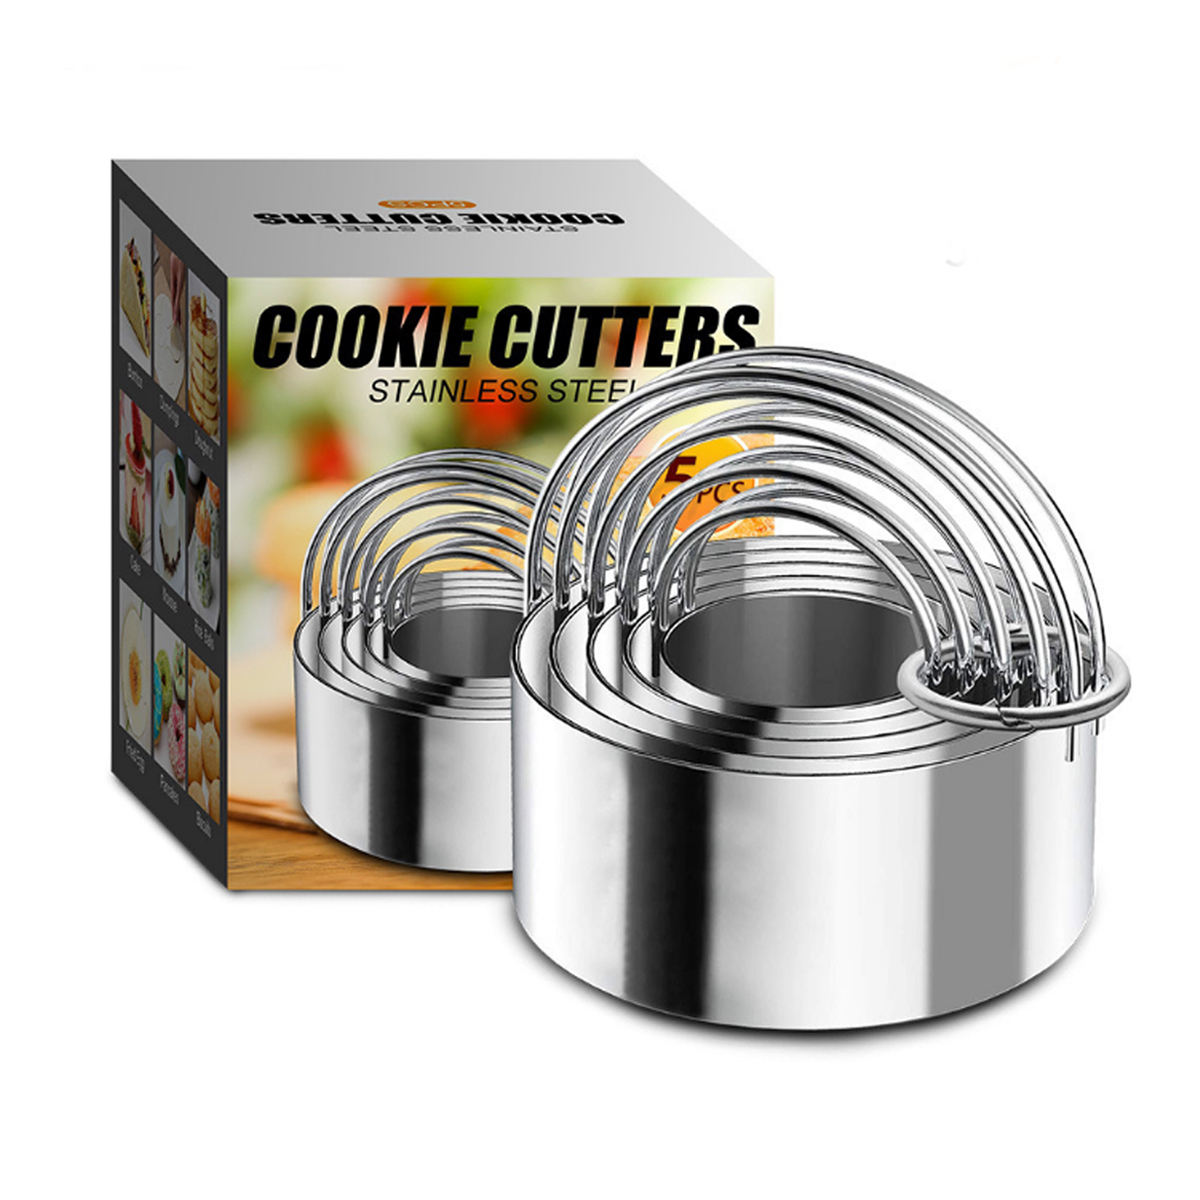 5 Pieces Round Shape in Graduated size 304 stainless steel Cookie Cutters Biscuit Plain Edge Fondant Cutters